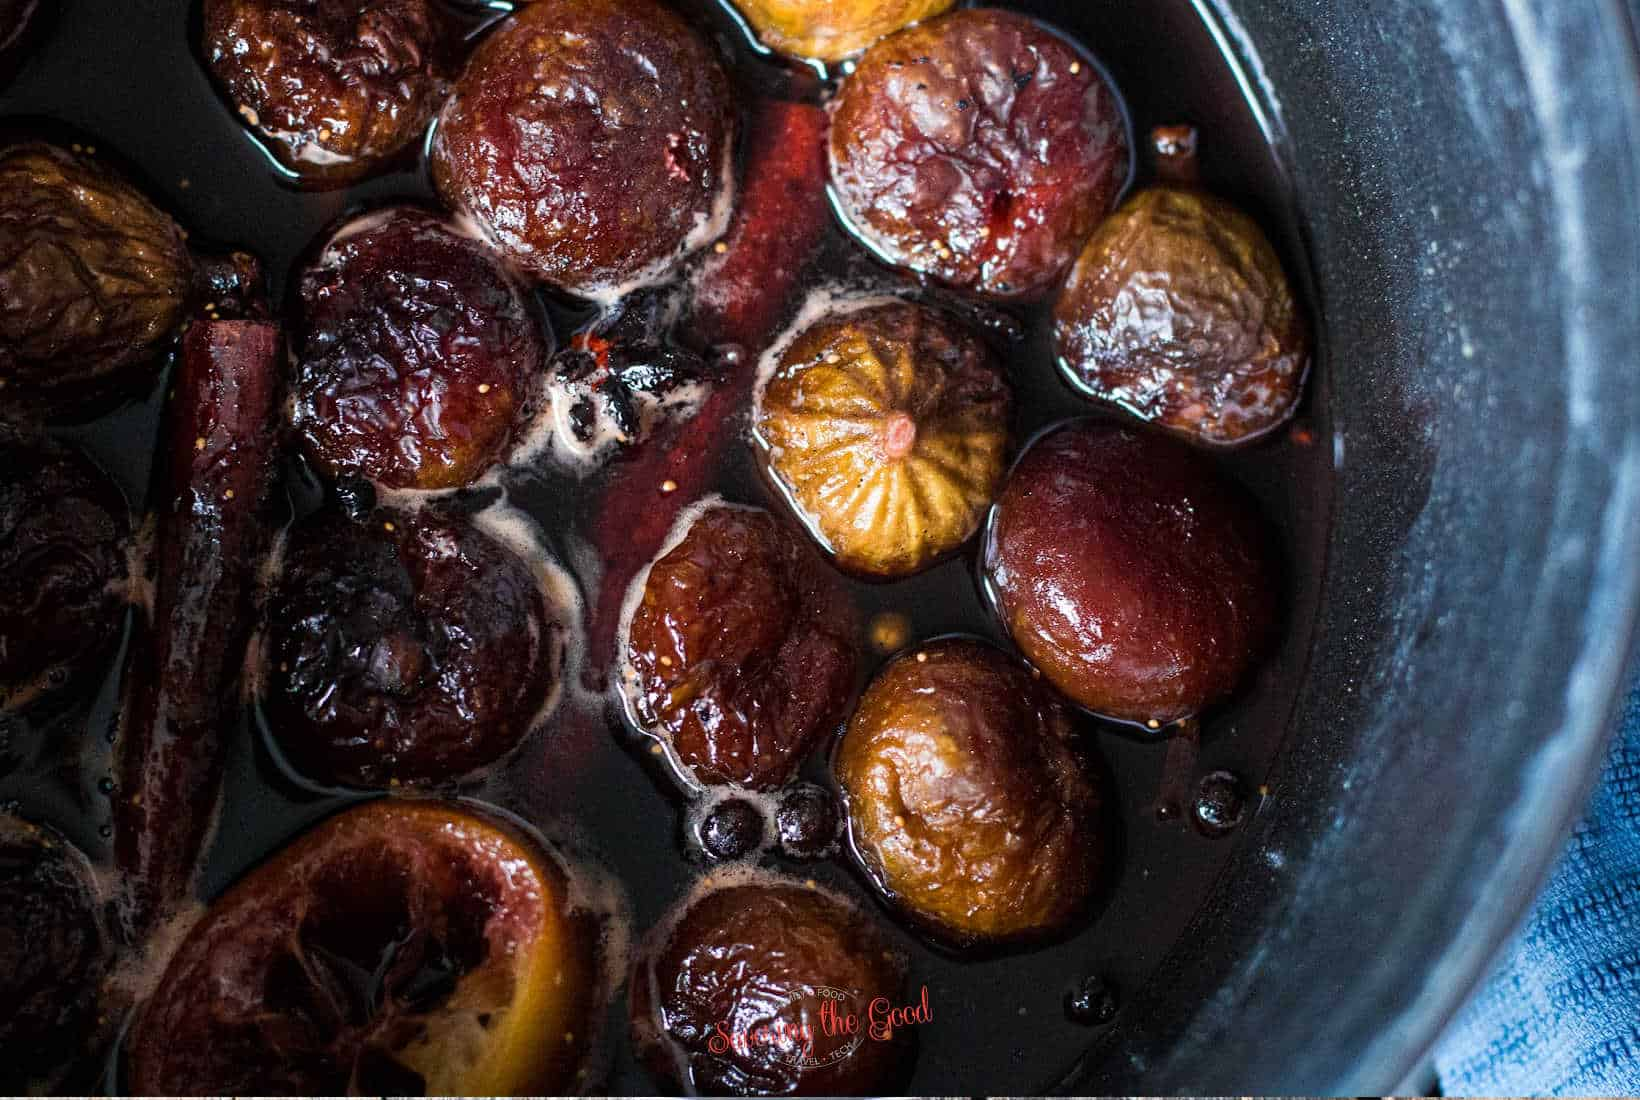 tight shot of figs being poached in a flavored simple syrup